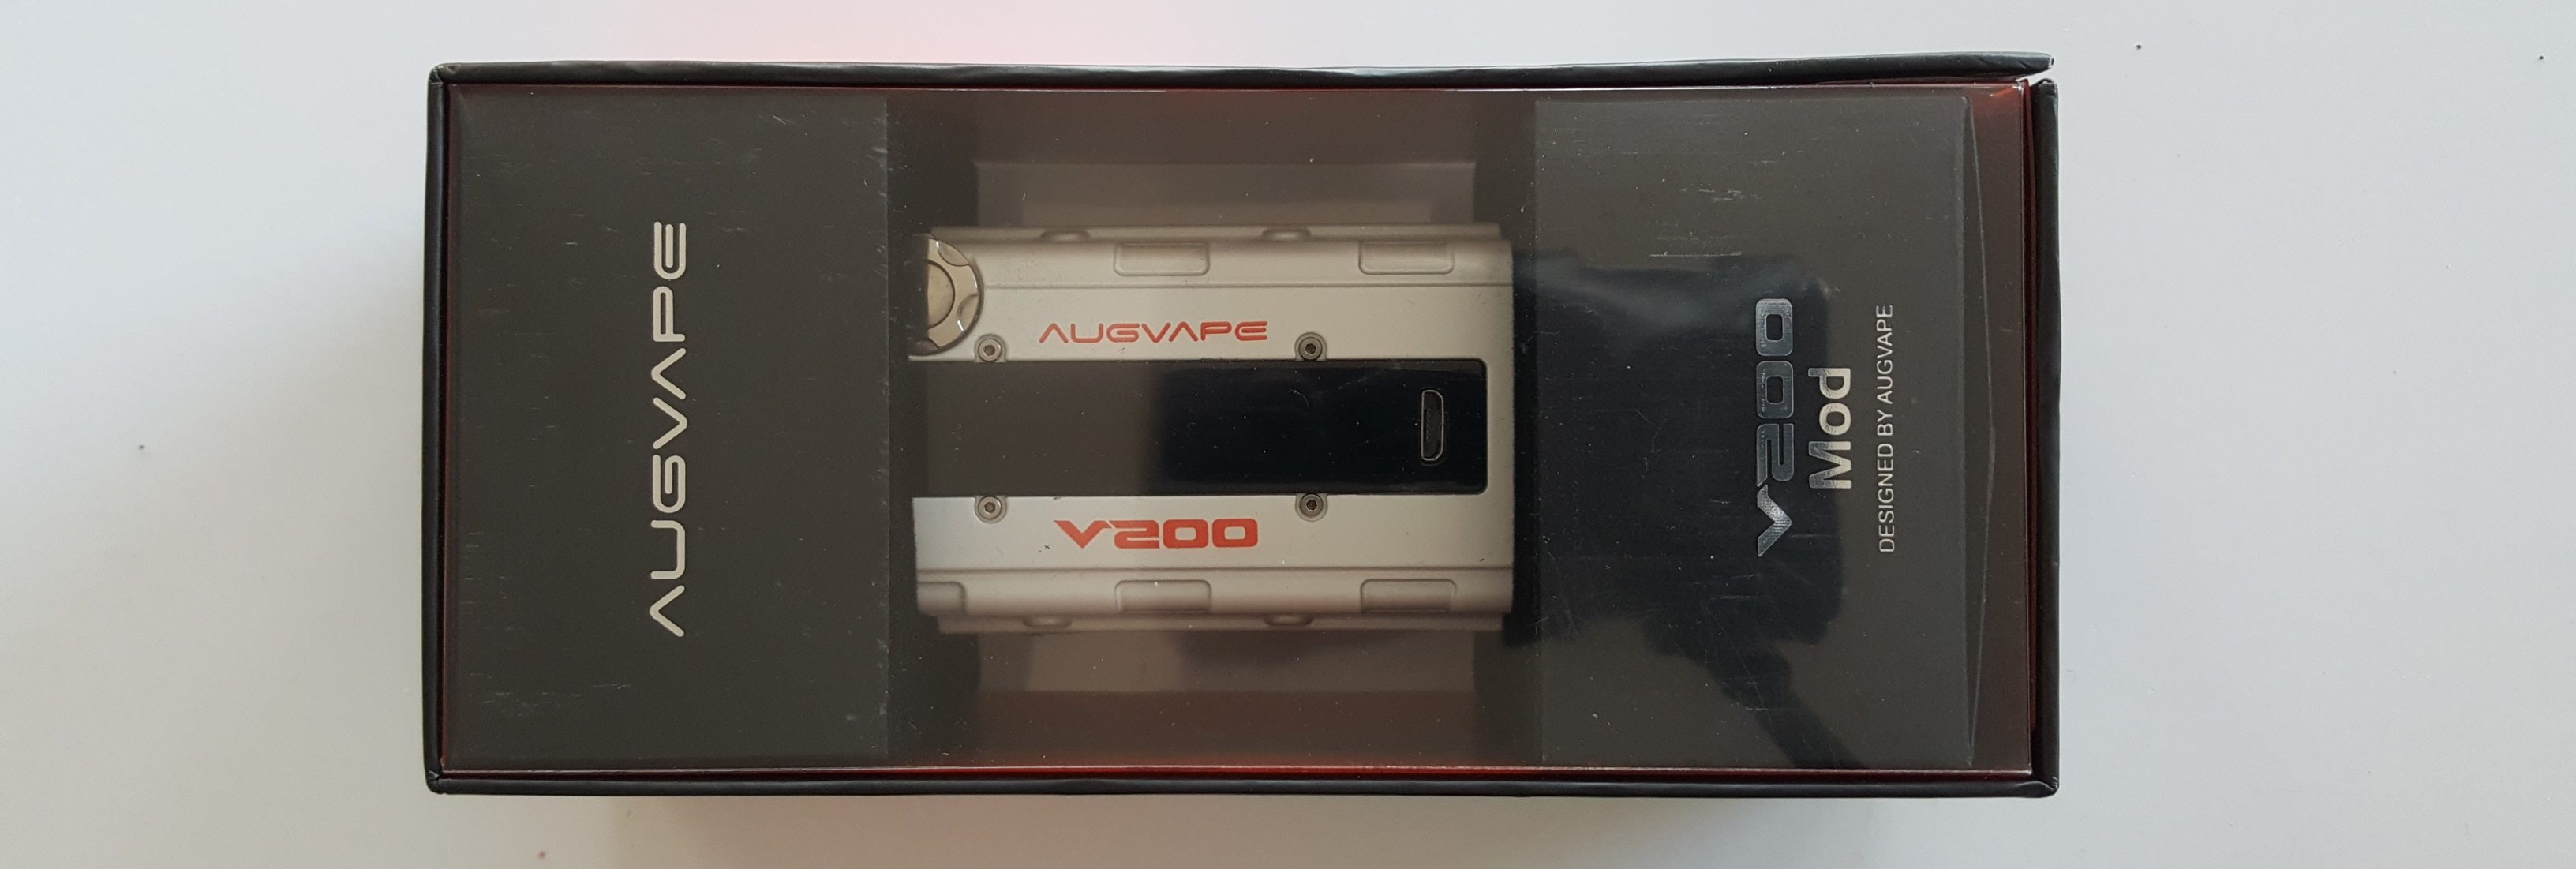 v200 packaging